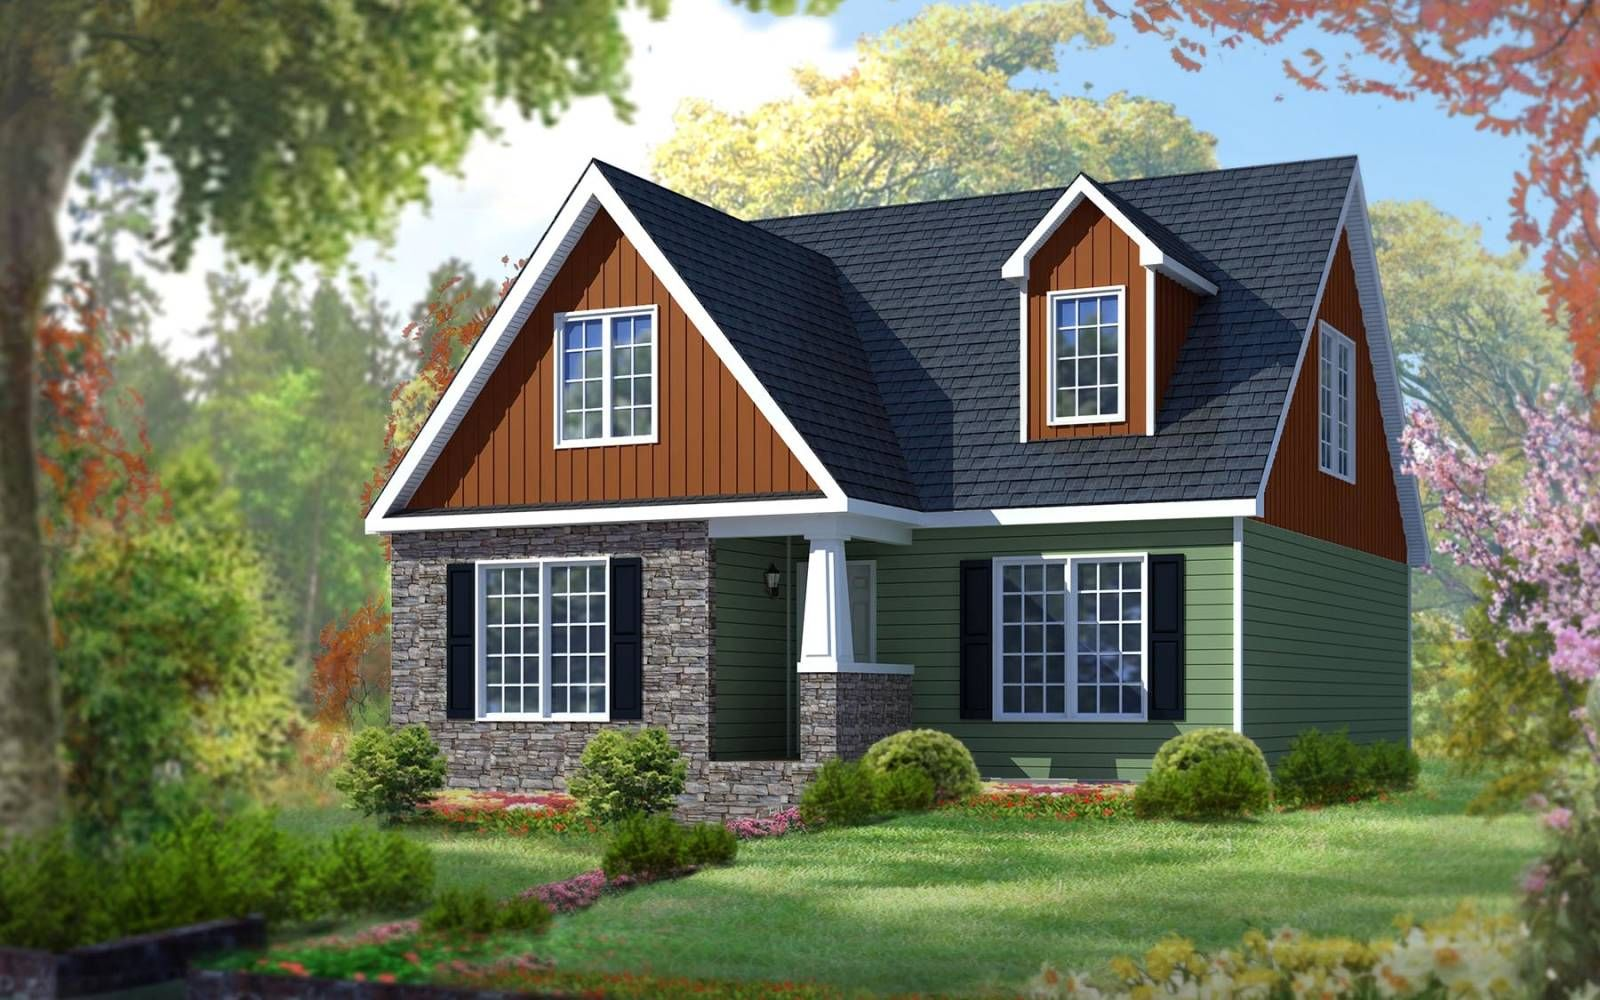 Barclay Excel Homes Excel Homes Prefab Modular Homes Modular Homes Modular Home Floor Plans